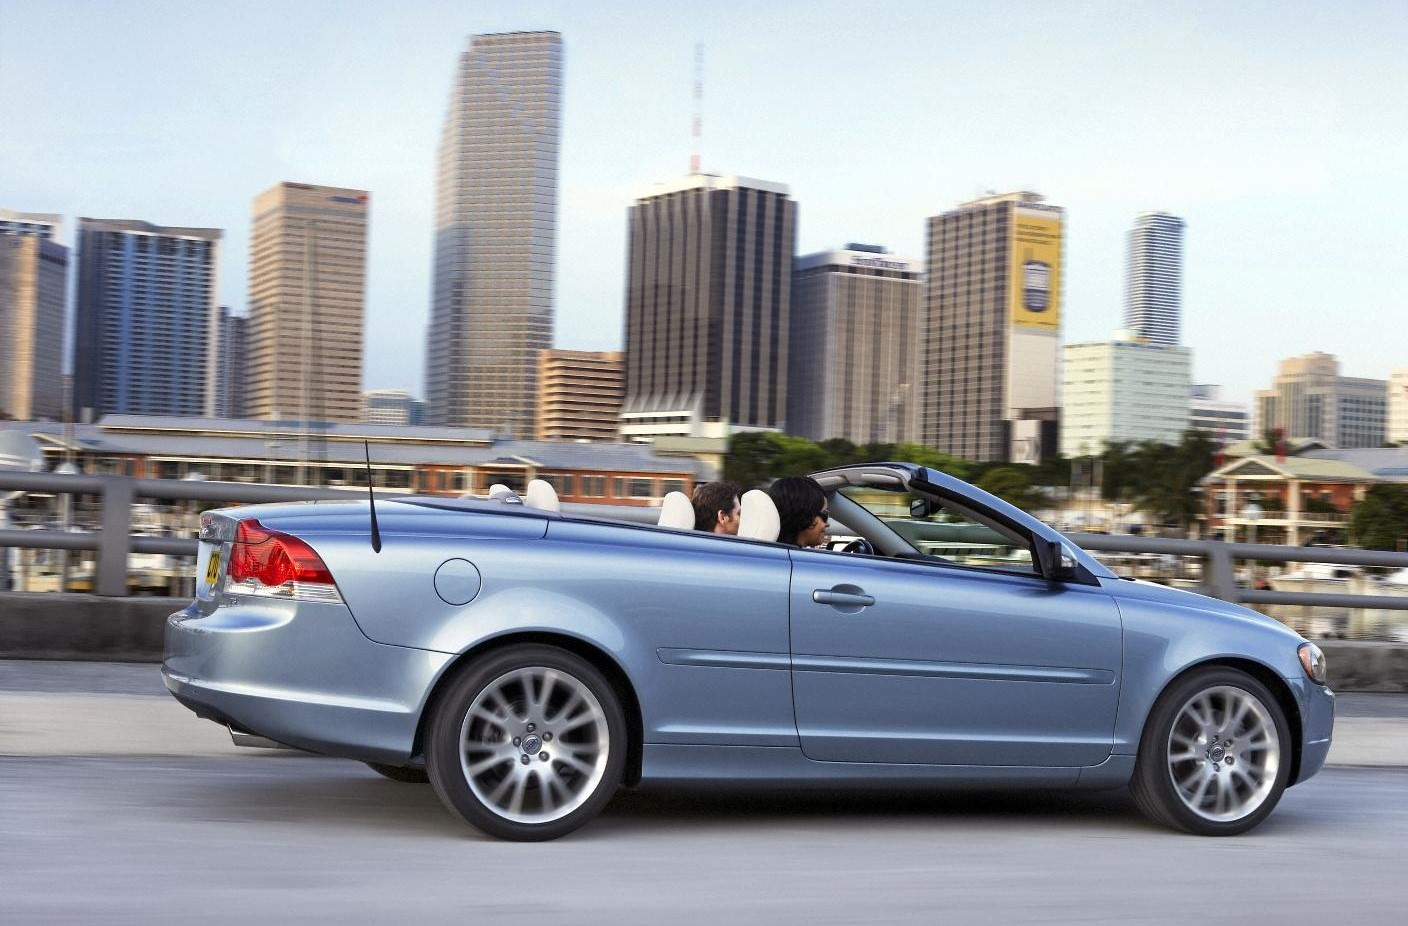 image of a silver volvo c70 convertible car exterior